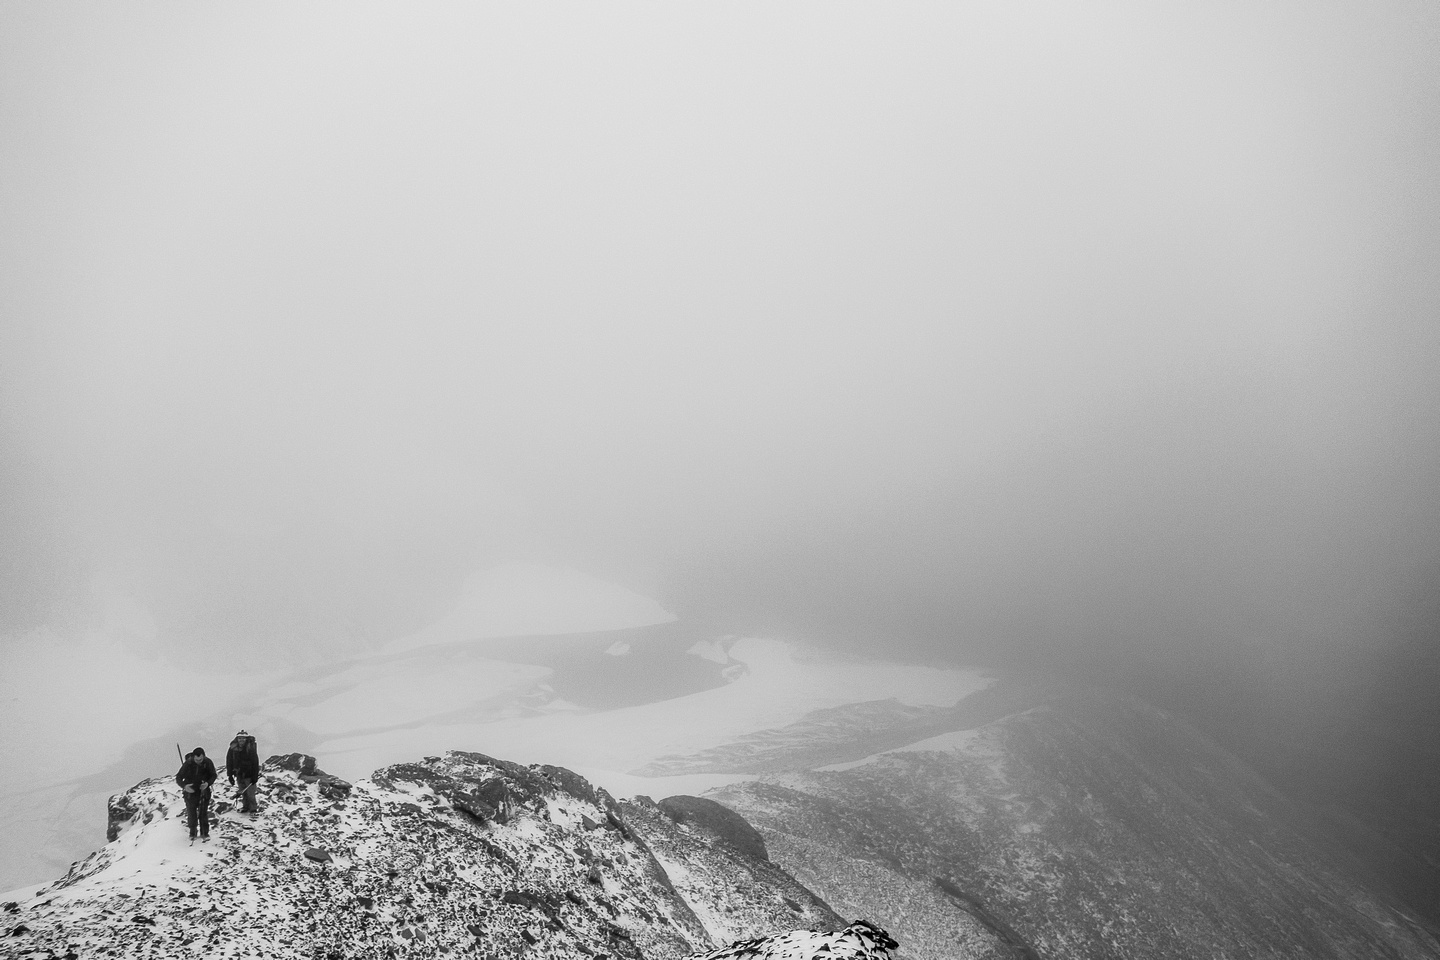 Eric and Ben on the south ridge - now we're in the clouds.